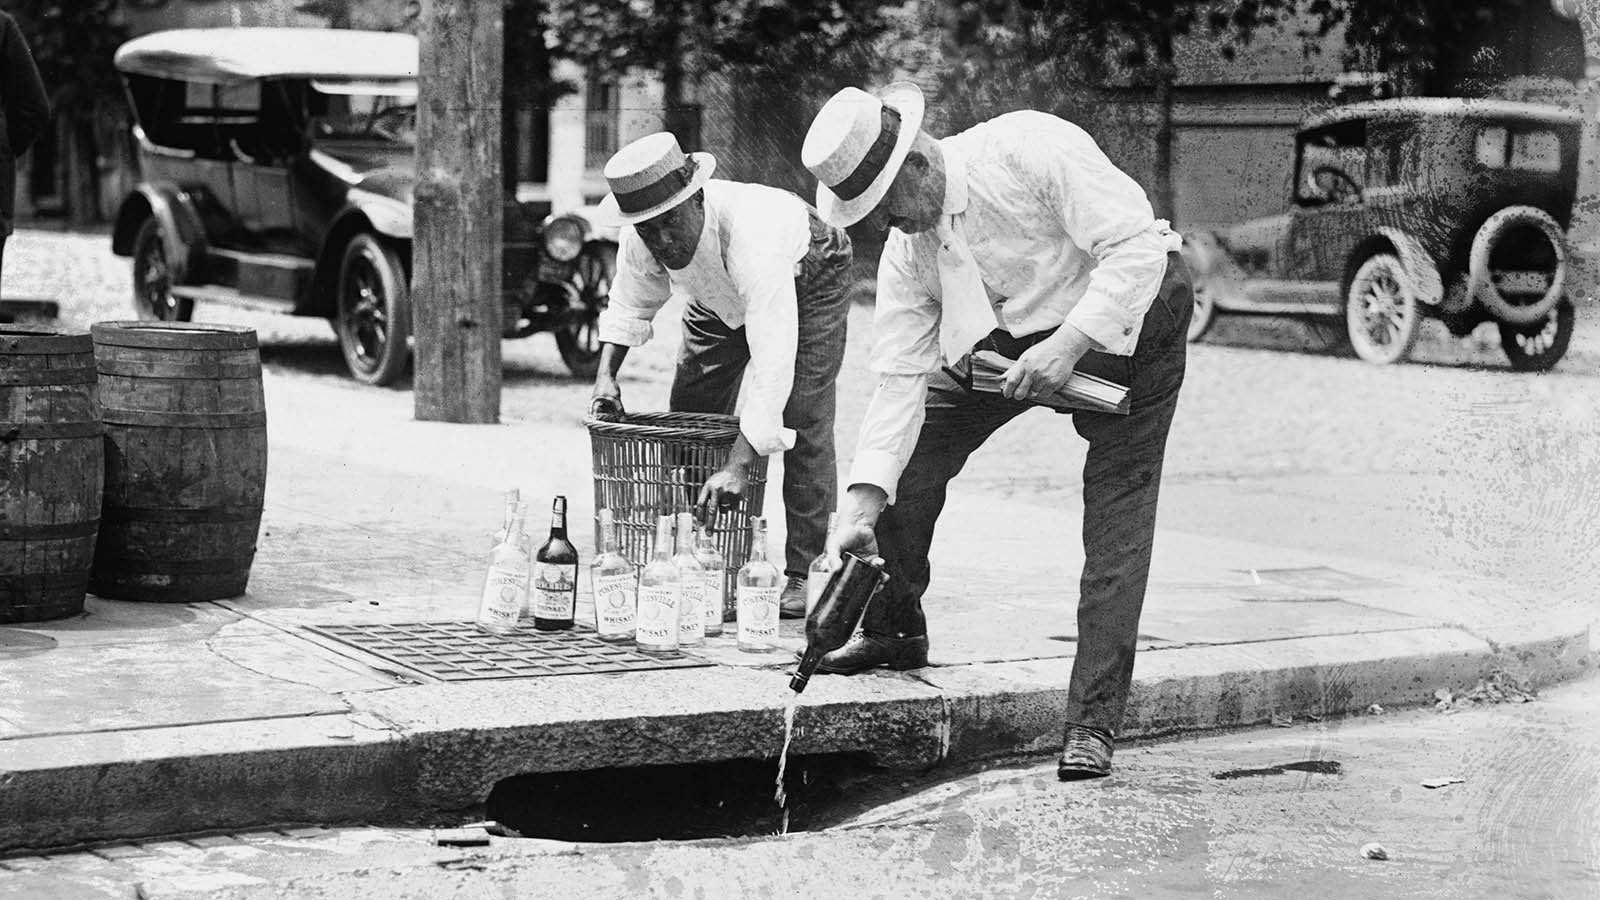 Two men pour alcohol down a drain during prohibition in the United States, c. 1920.